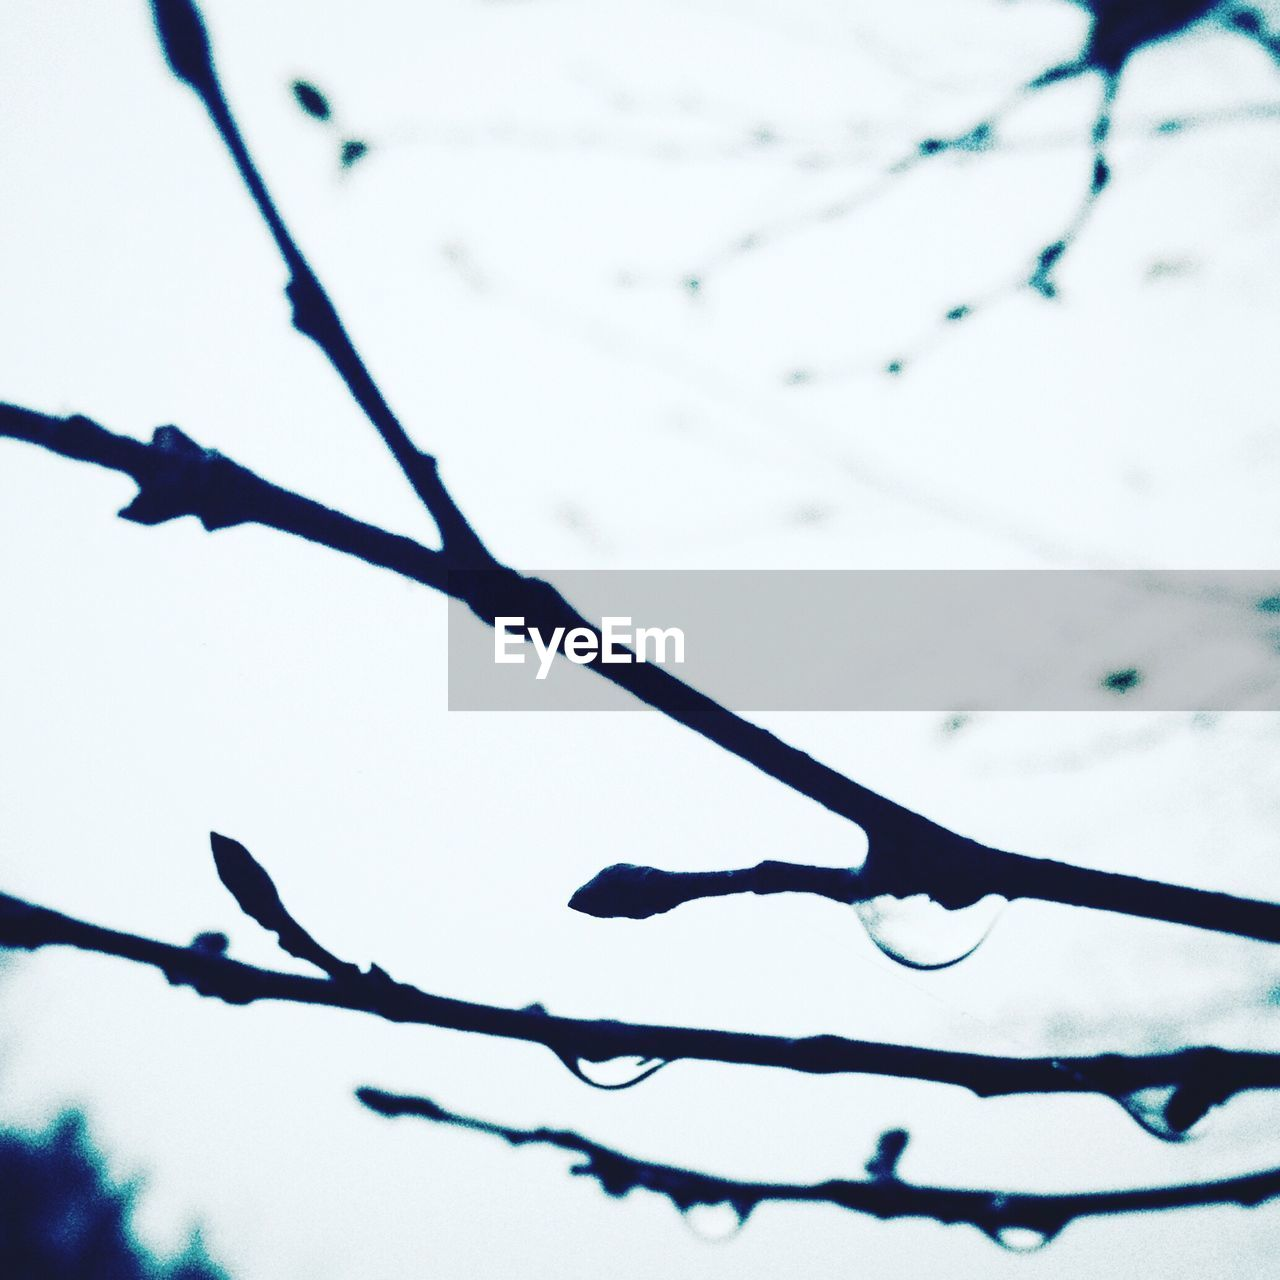 Close-Up Of Water Drops On Branches Against Blurred Background